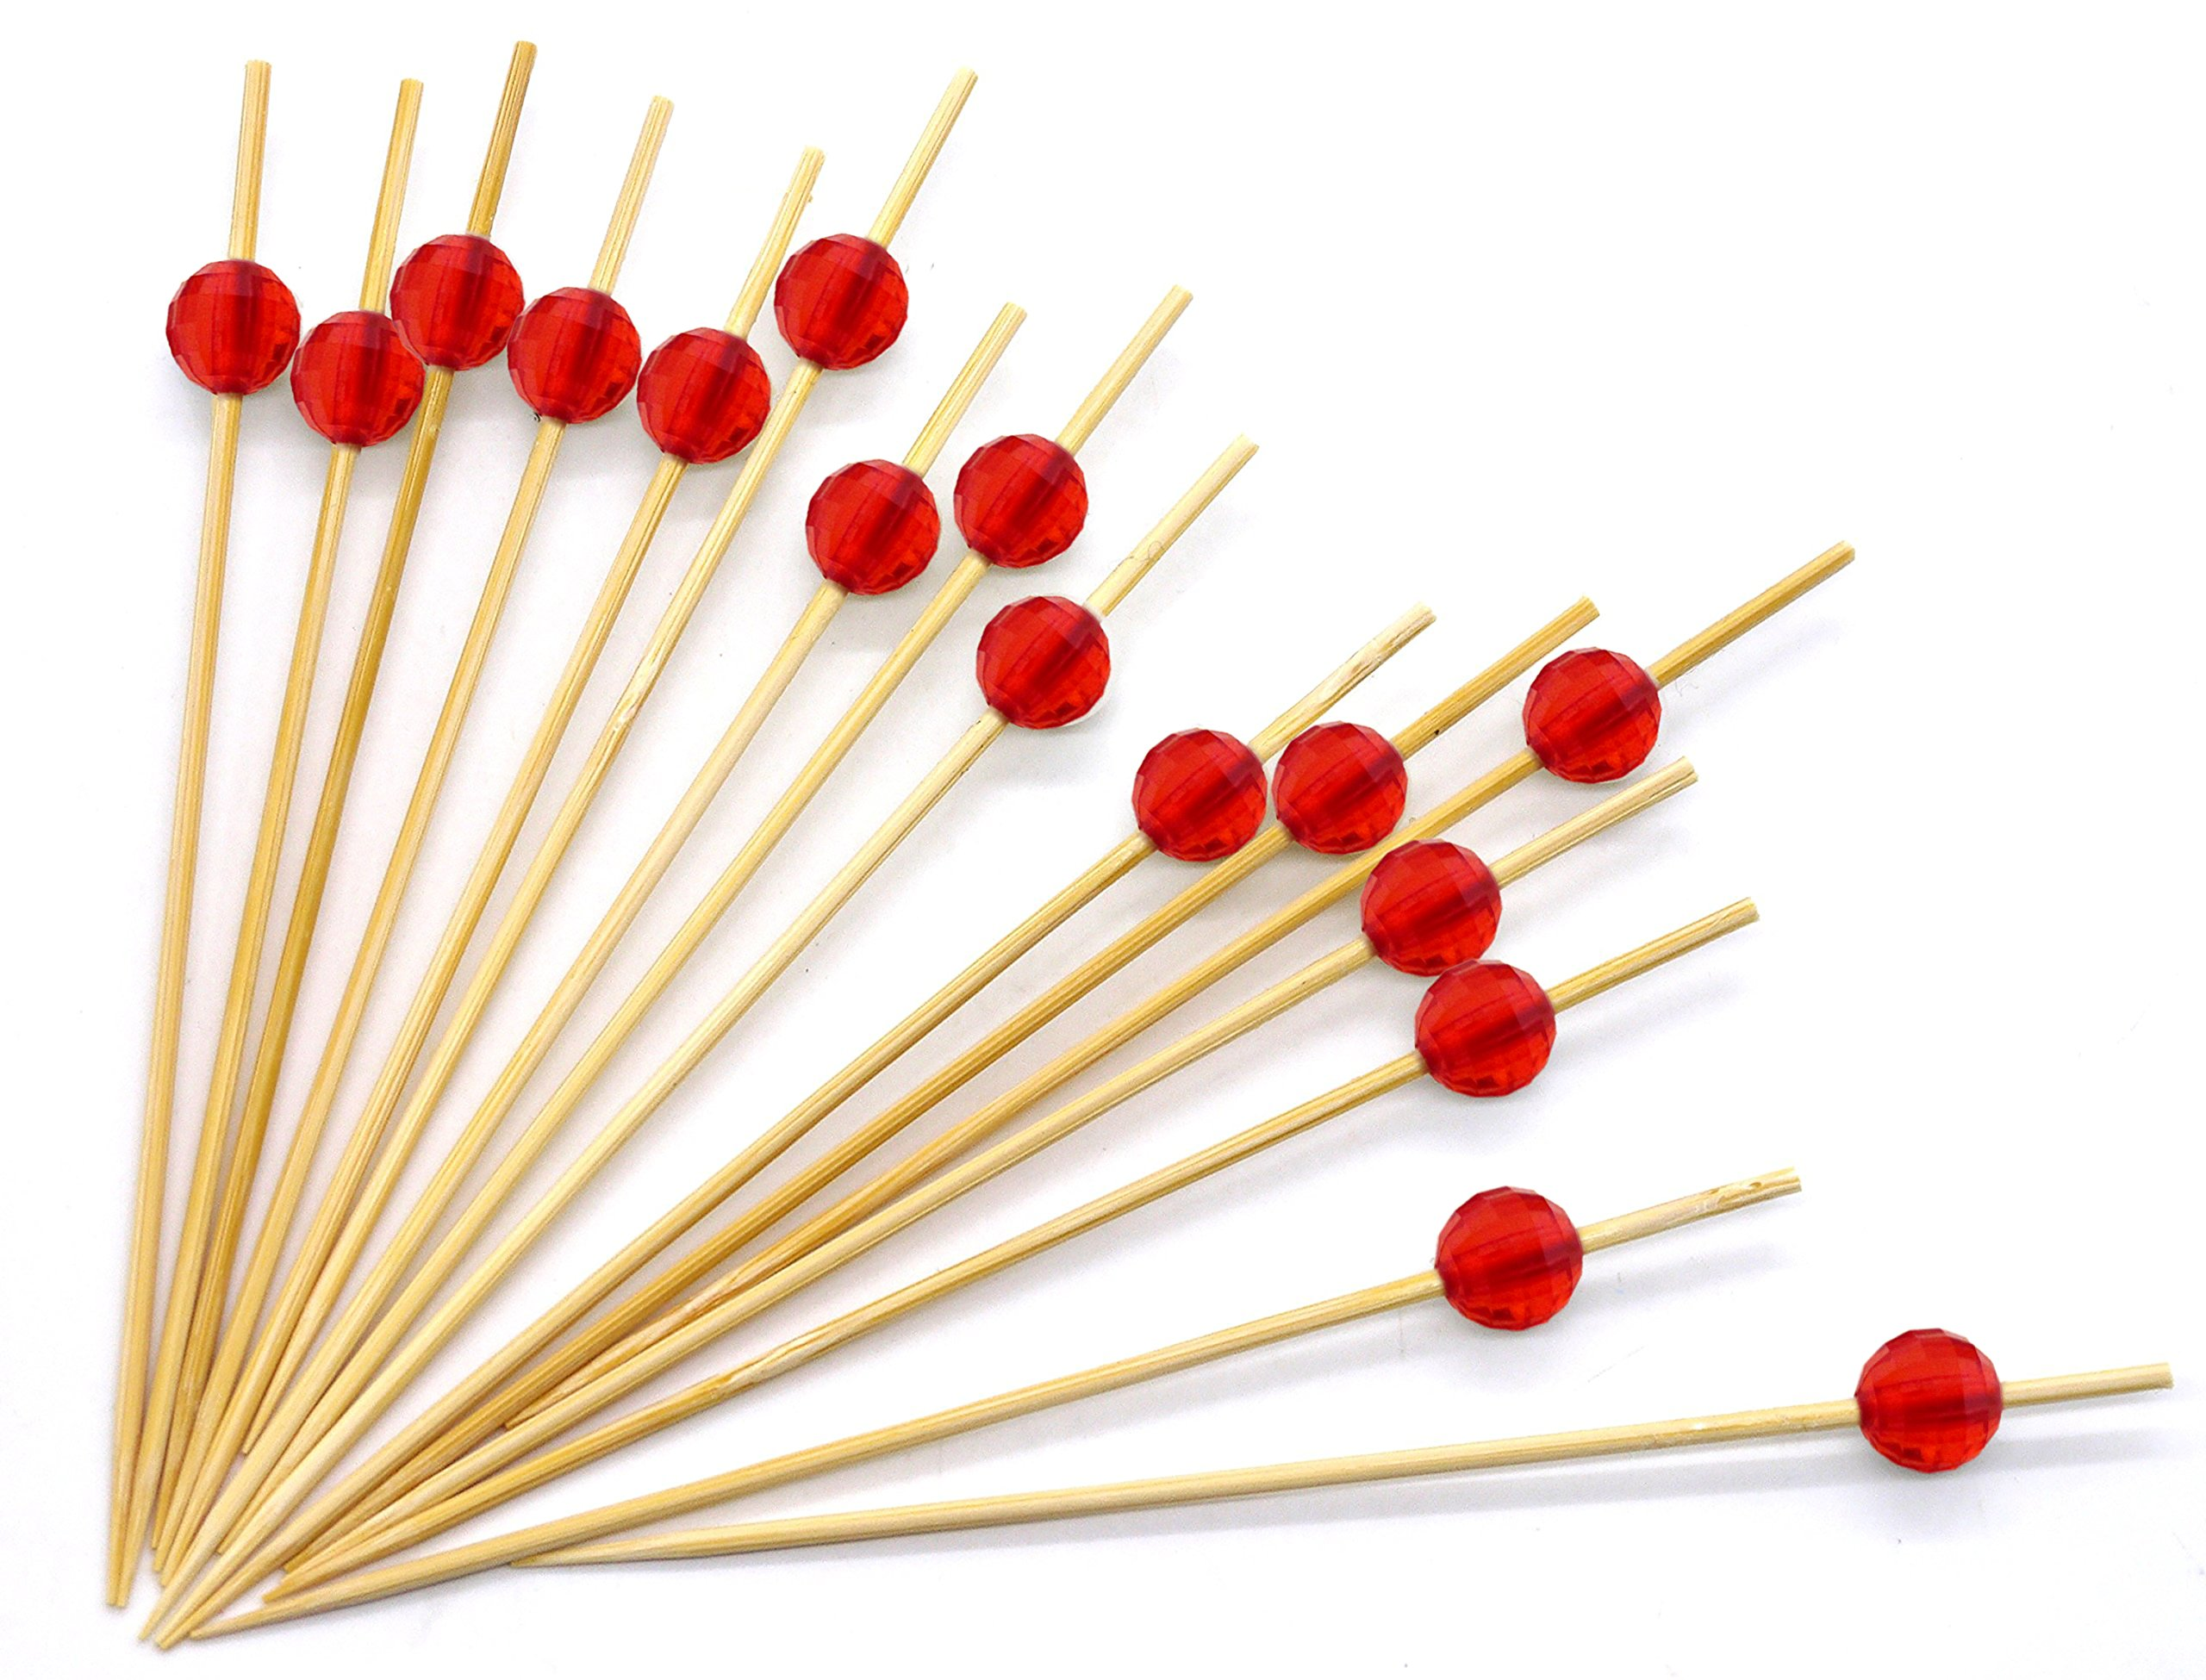 4.7'' Red Bamboo Cocktail Ball Picks. Includes 300 Decorative Bamboo Cocktail Skewers With Red Shiny Beads. Great For Cocktail Parties, Hors D'oeuvres, Weddings, Receptions, Holidays And Much More!!